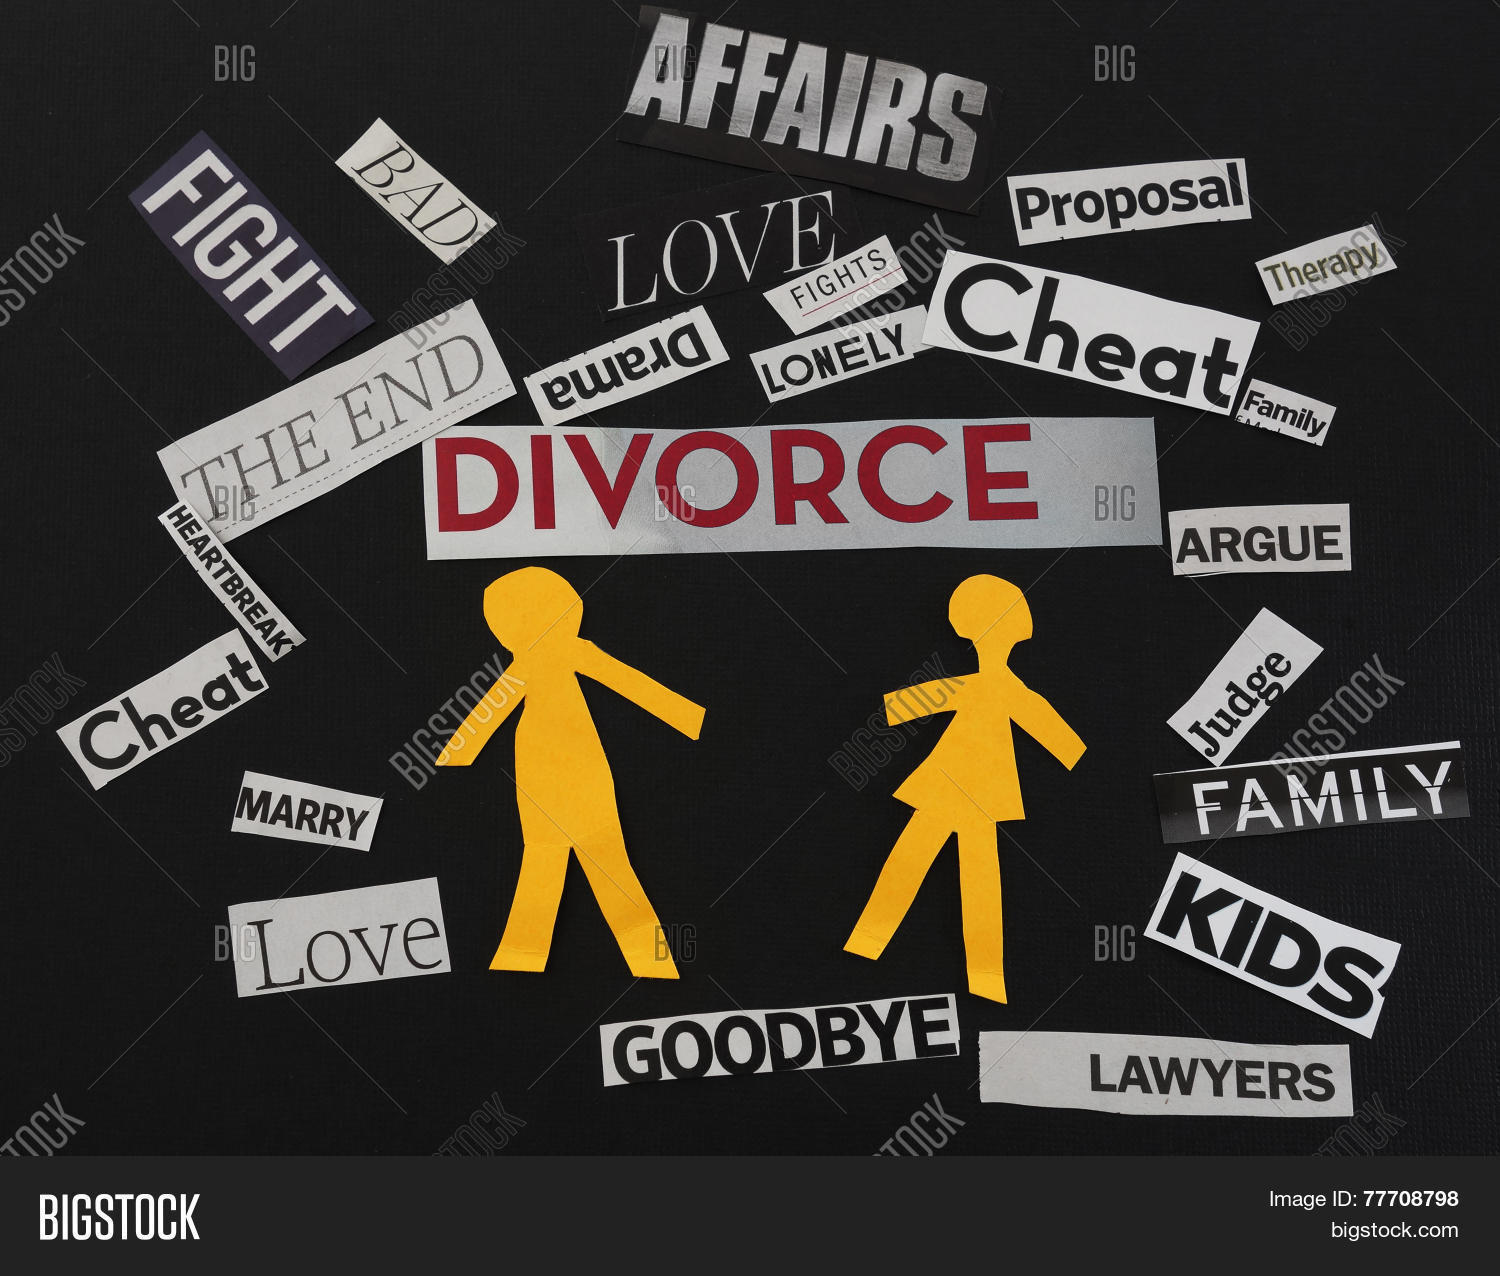 alimony,apart,argue,attorney,breakup,cheat,cheating,couple,couple arguing,couple fighting,custody,divorce,failed,family,family law,fight,infidelity,law,lawsuit,lawyer,legal,marriage,married,messages,paper,relationship,scraps,separation,split,sue